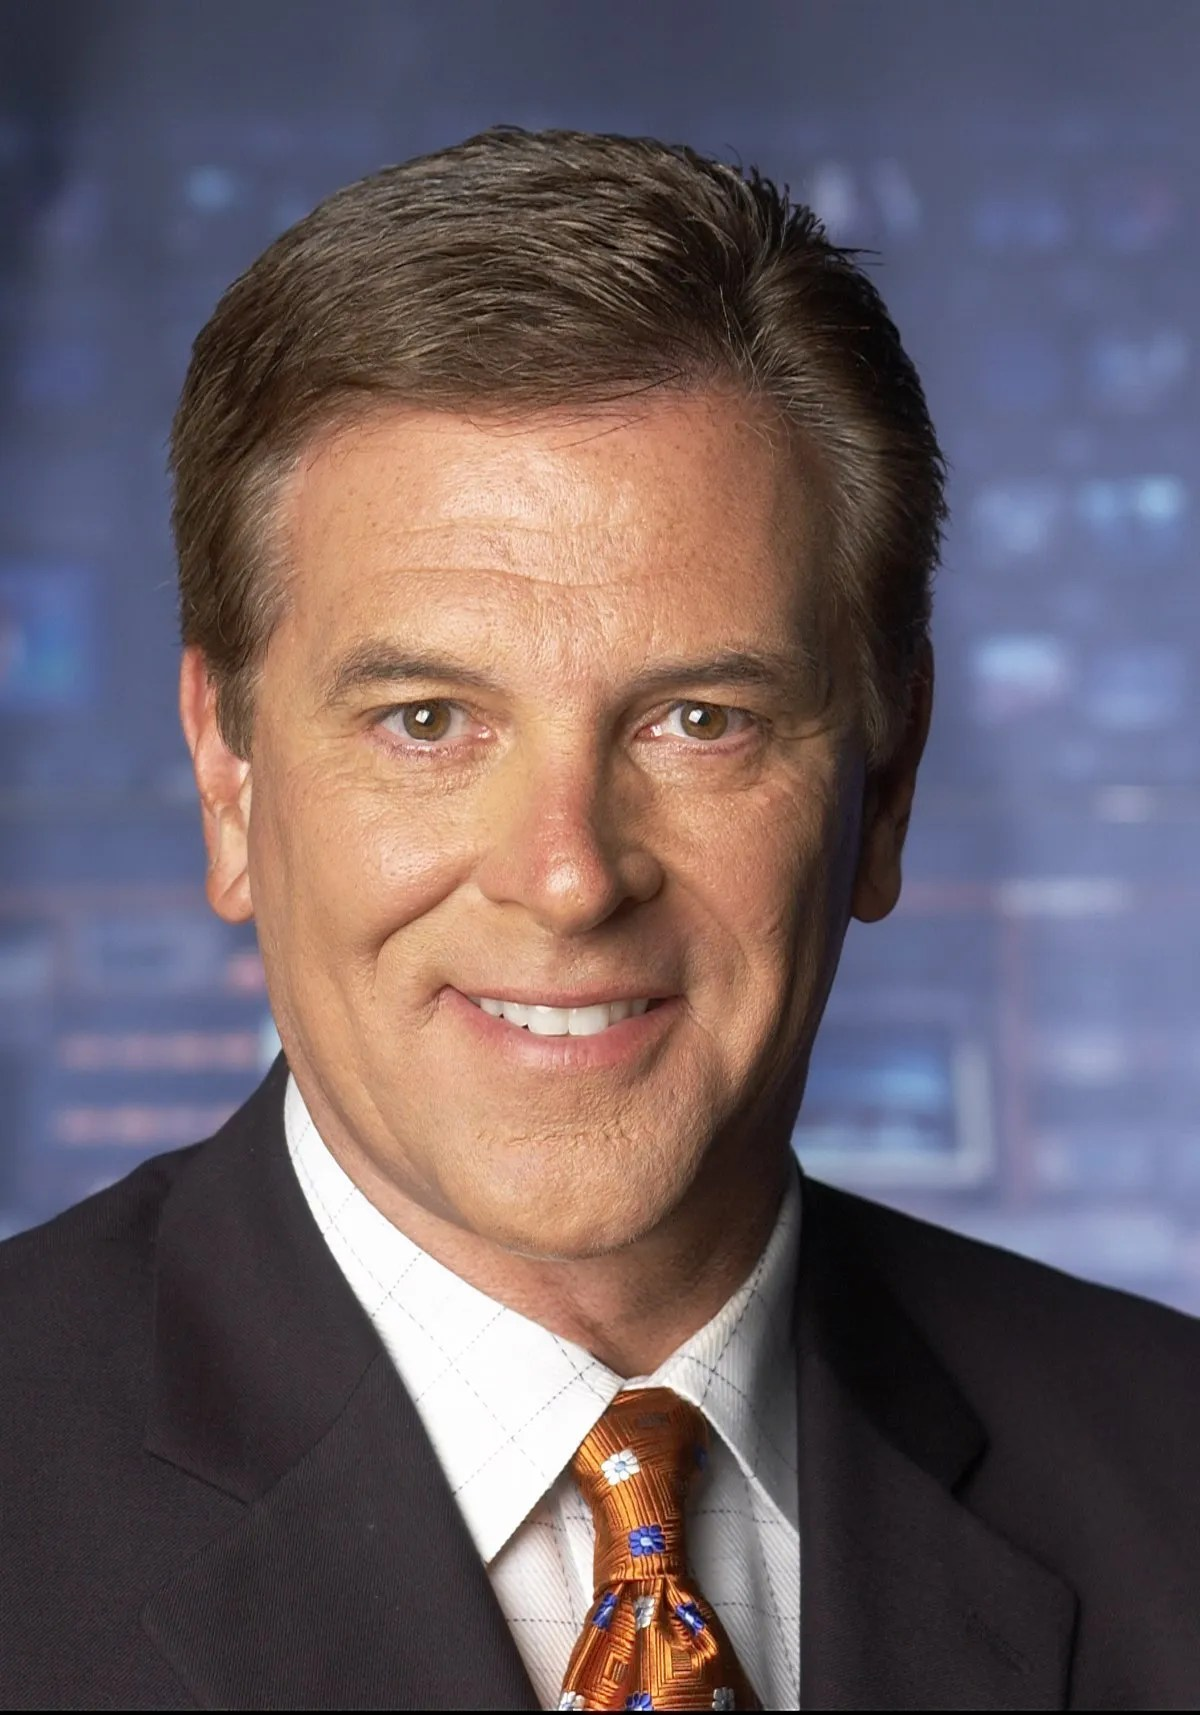 Detroit Lions: Fred McLeod the new preseason play-by-play man